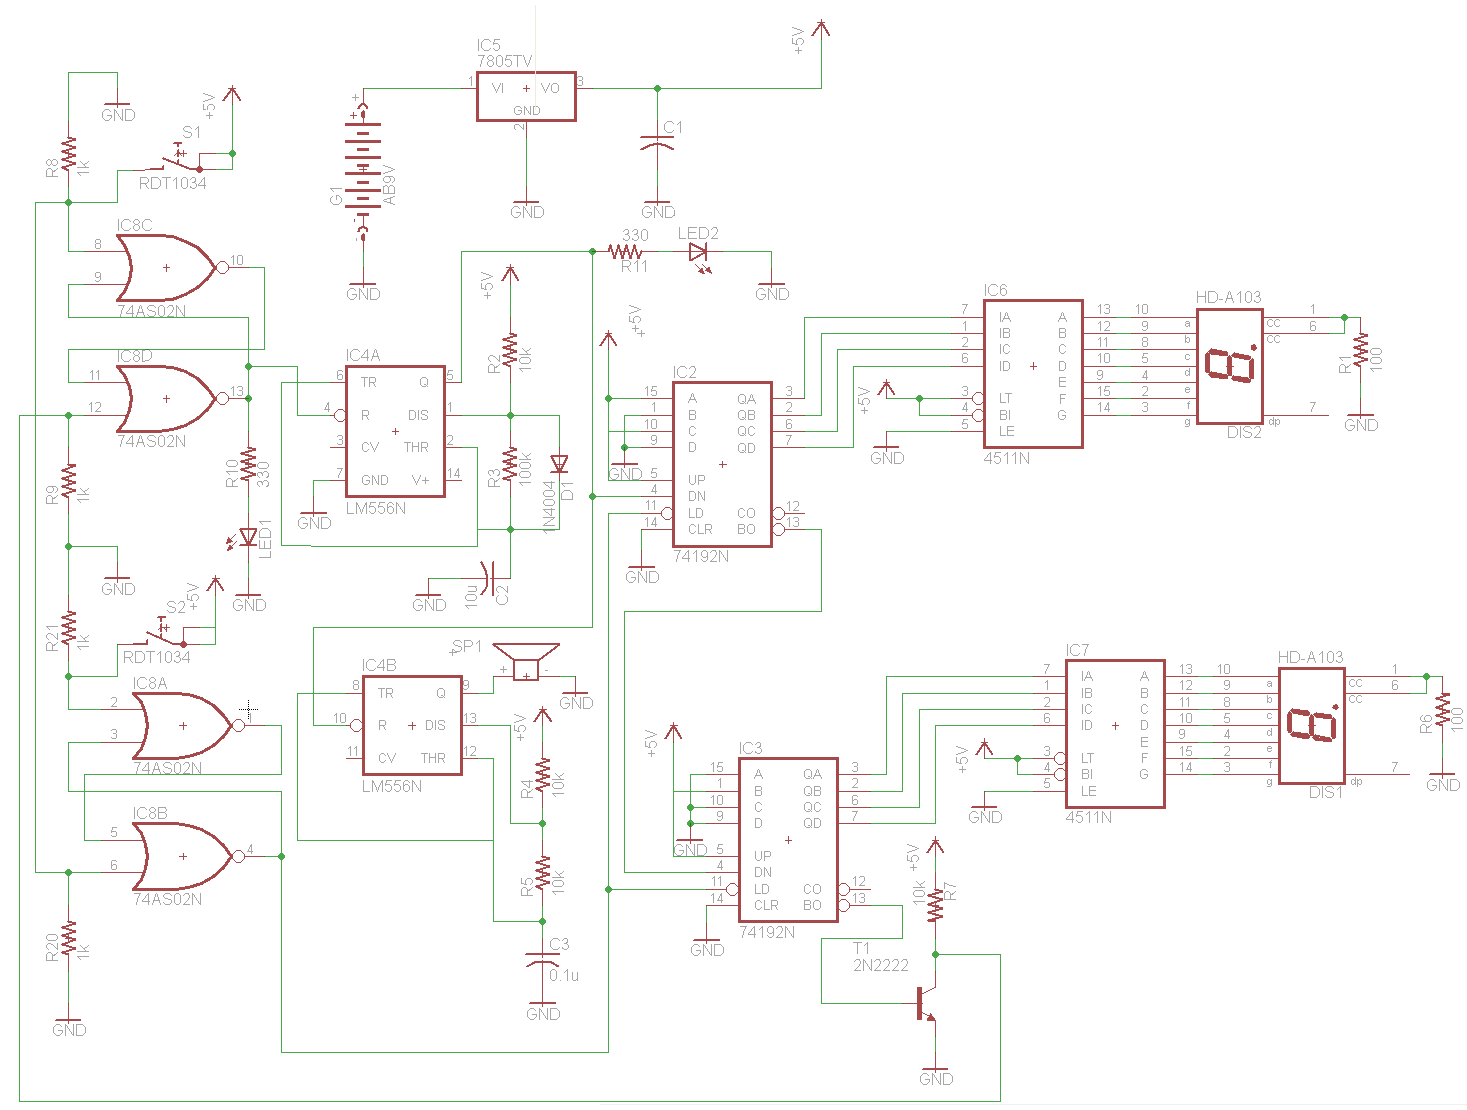 beeping down counter schematic pyroelectro news projects rh pyroelectro com